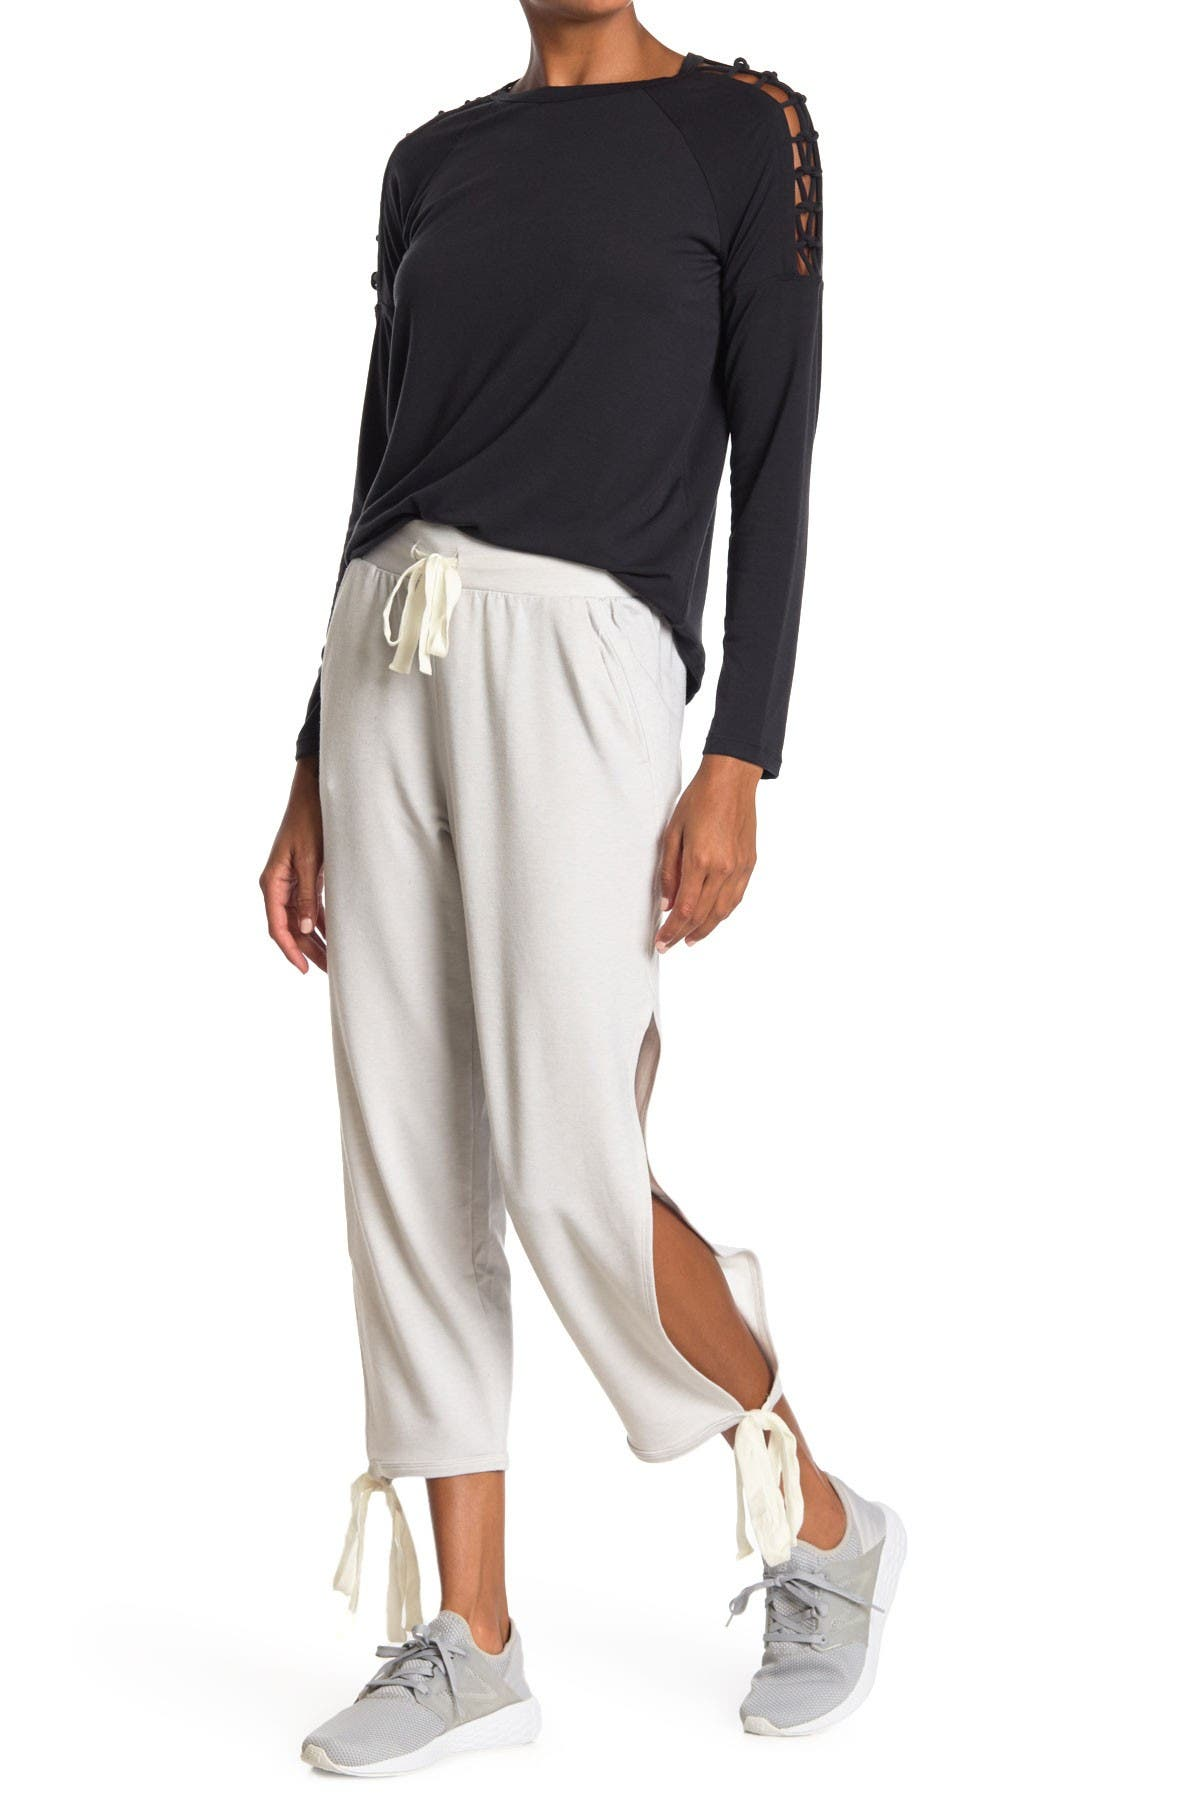 Image of New Balance Balance Detox Pants